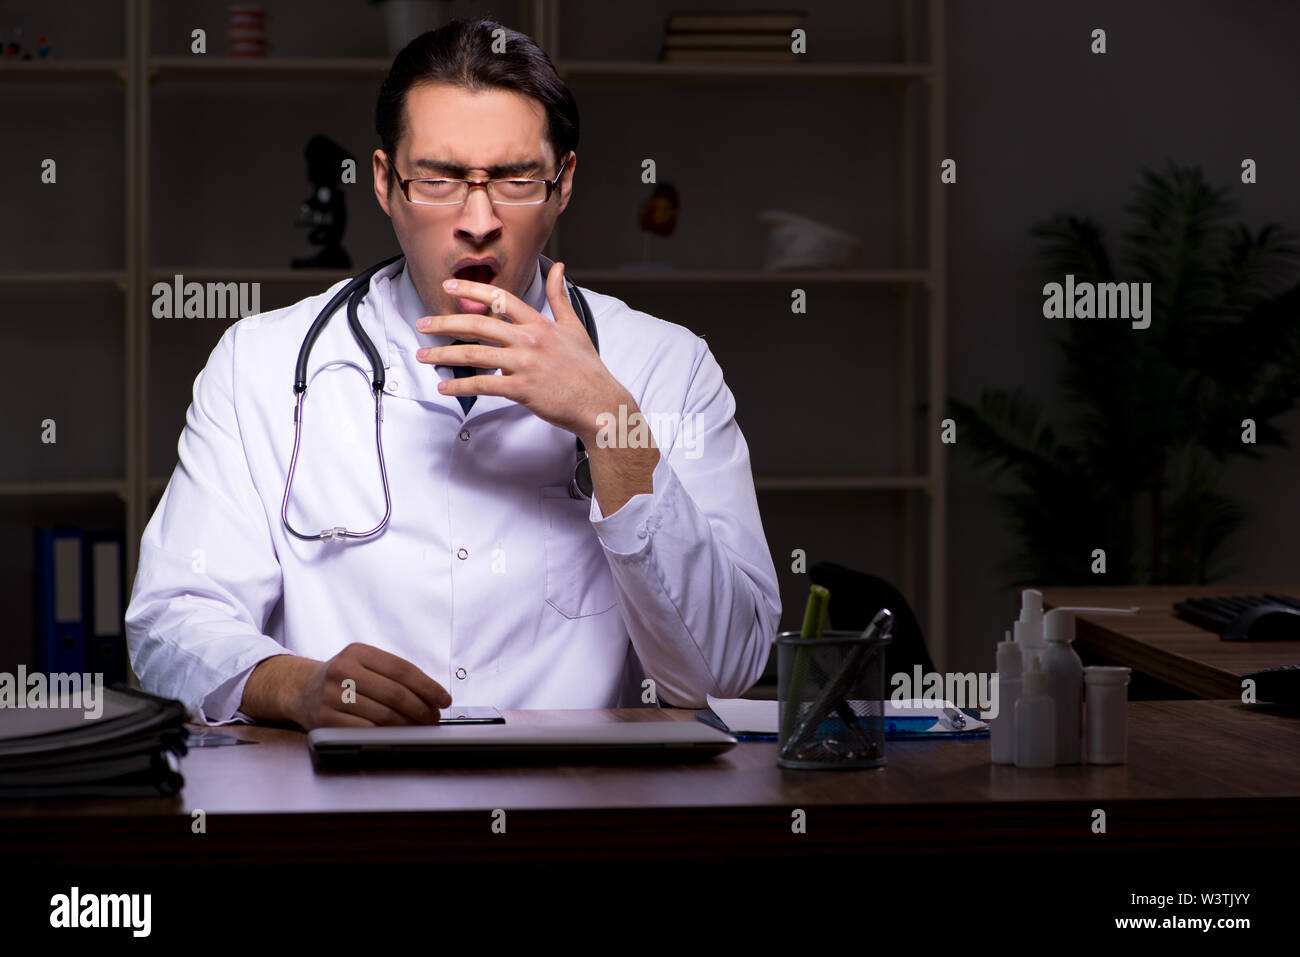 The young male doctor in the hospital at night - Stock Image